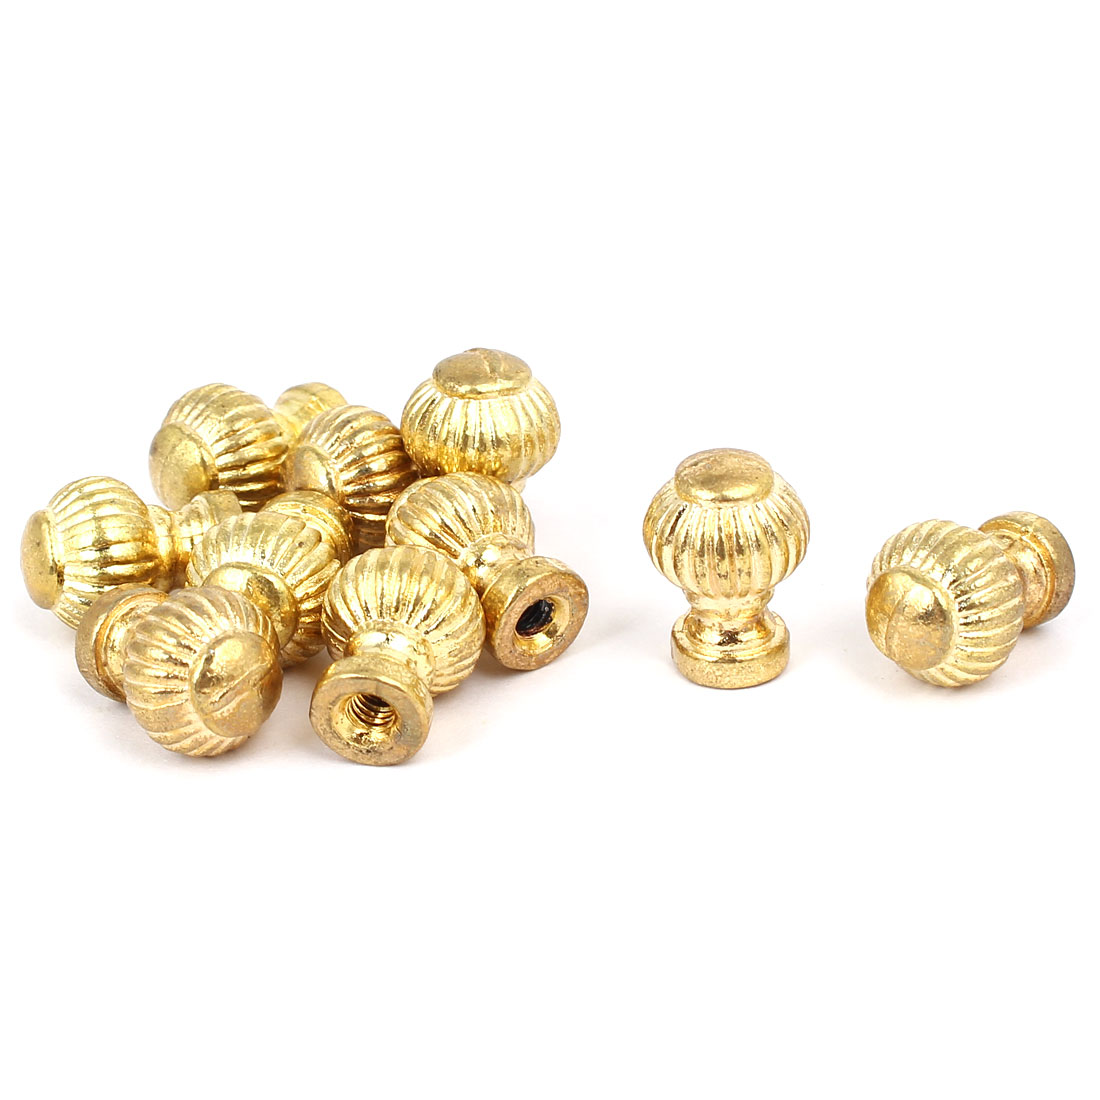 Wood Jewelry Box Metal Round Base Single Hole Pull Knob Handle Gold Tone 10pcs